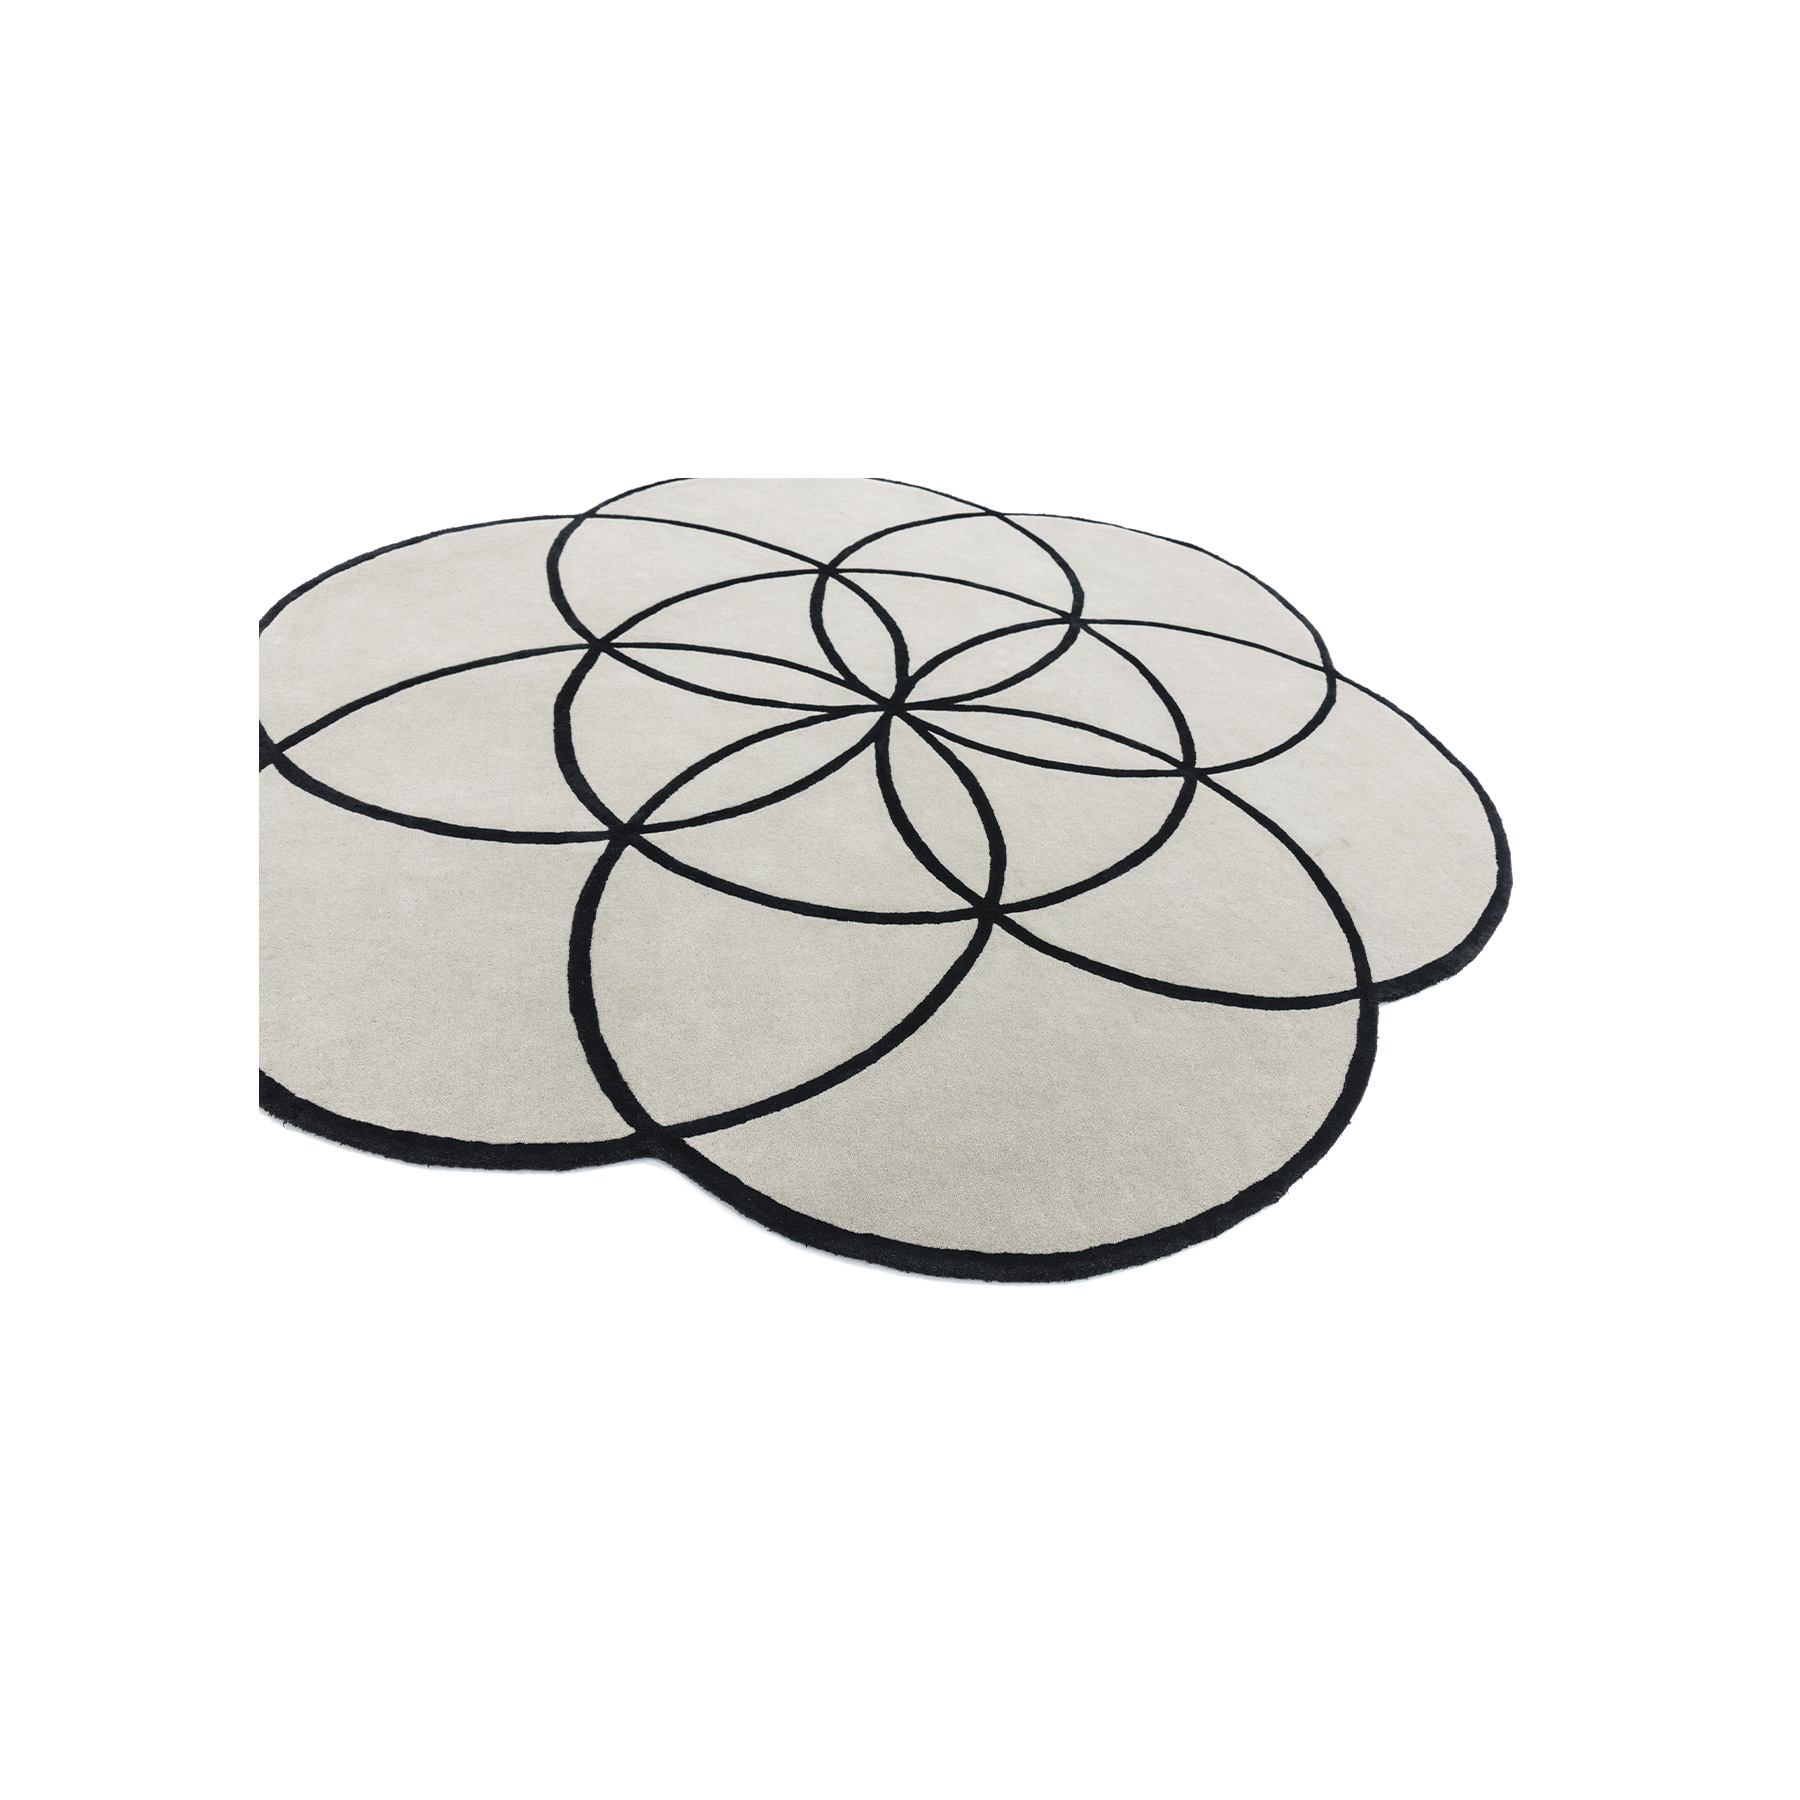 Lotus Black Rug - <p>Contemporary Design is 'of the moment' - the designs are fluid, ever-changing, eclectic and bold. Simple, subtle sophistication, deliberate use of texture and clean lines define a contemporary style of decorating. This collection illustrates this spirit. Lotus is a series of luxury tufted wool flower shaped rugs with fine viscose outline. Hand-tufted in India.  </p>  | Matter of Stuff